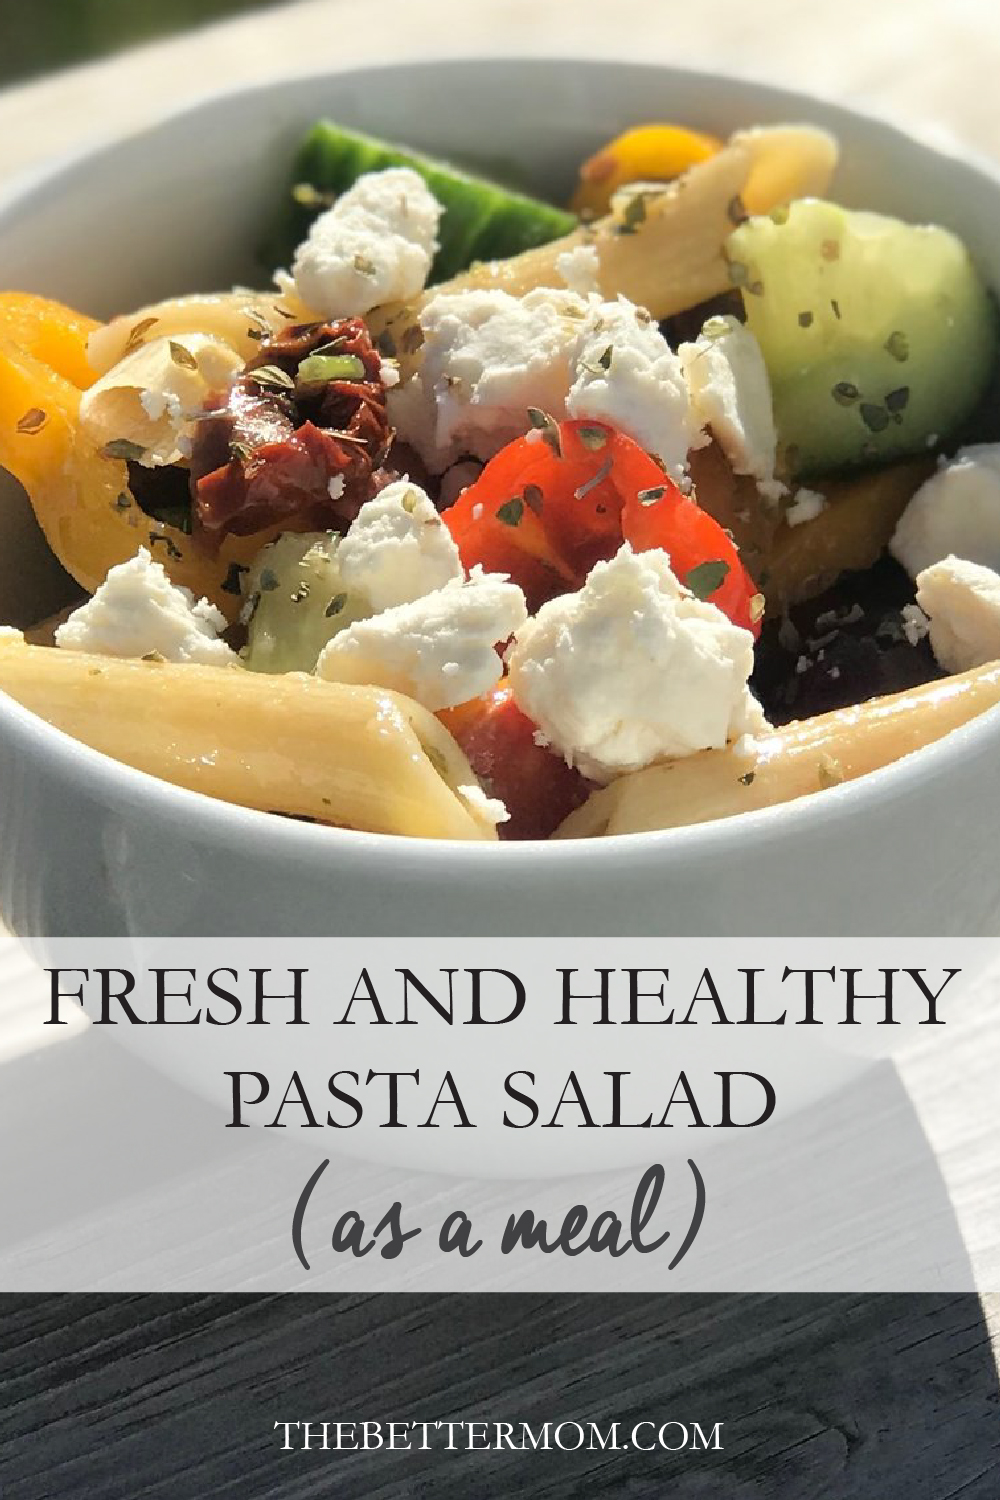 I LOVED pasta salad as a child so this fresh new take on it has me all giddy! If you are looking for an easy and YUMMY meal for the fam now that the warmer weather is here, this Fresh and Healthy Pasta Salad is it!!